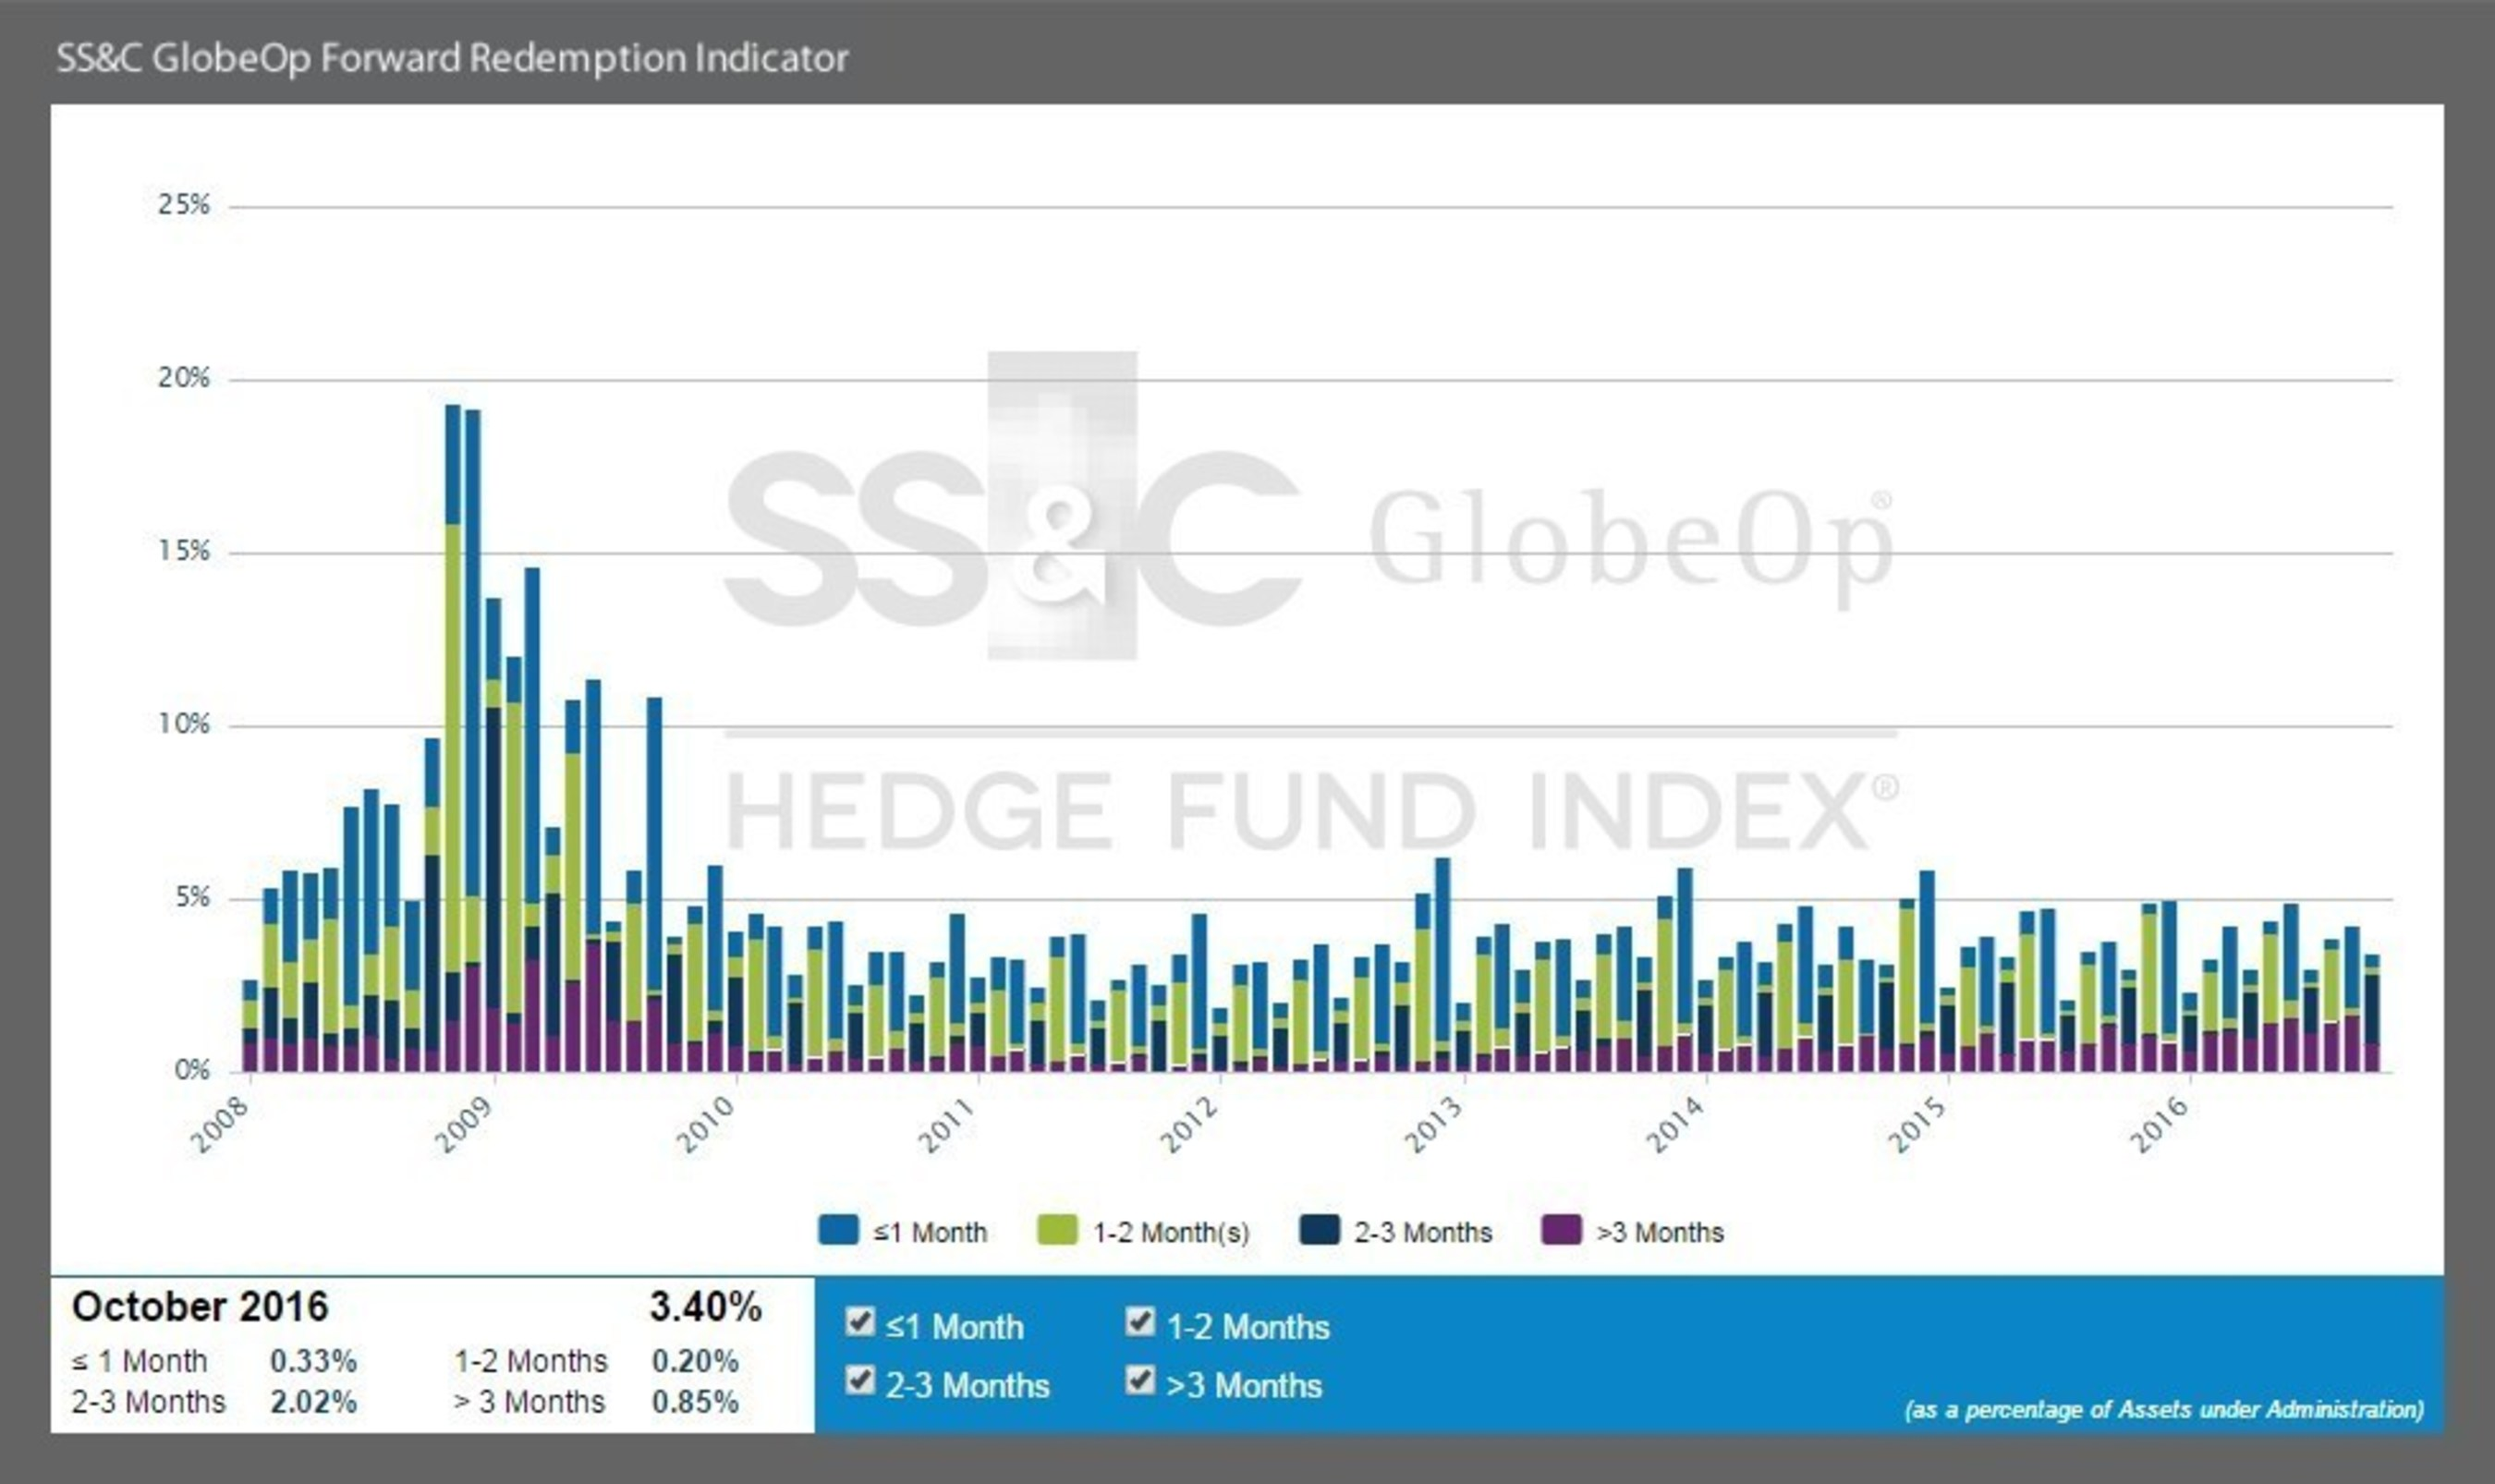 SS&C GlobeOp Forward Redemption Indicator: October notifications 3.40%